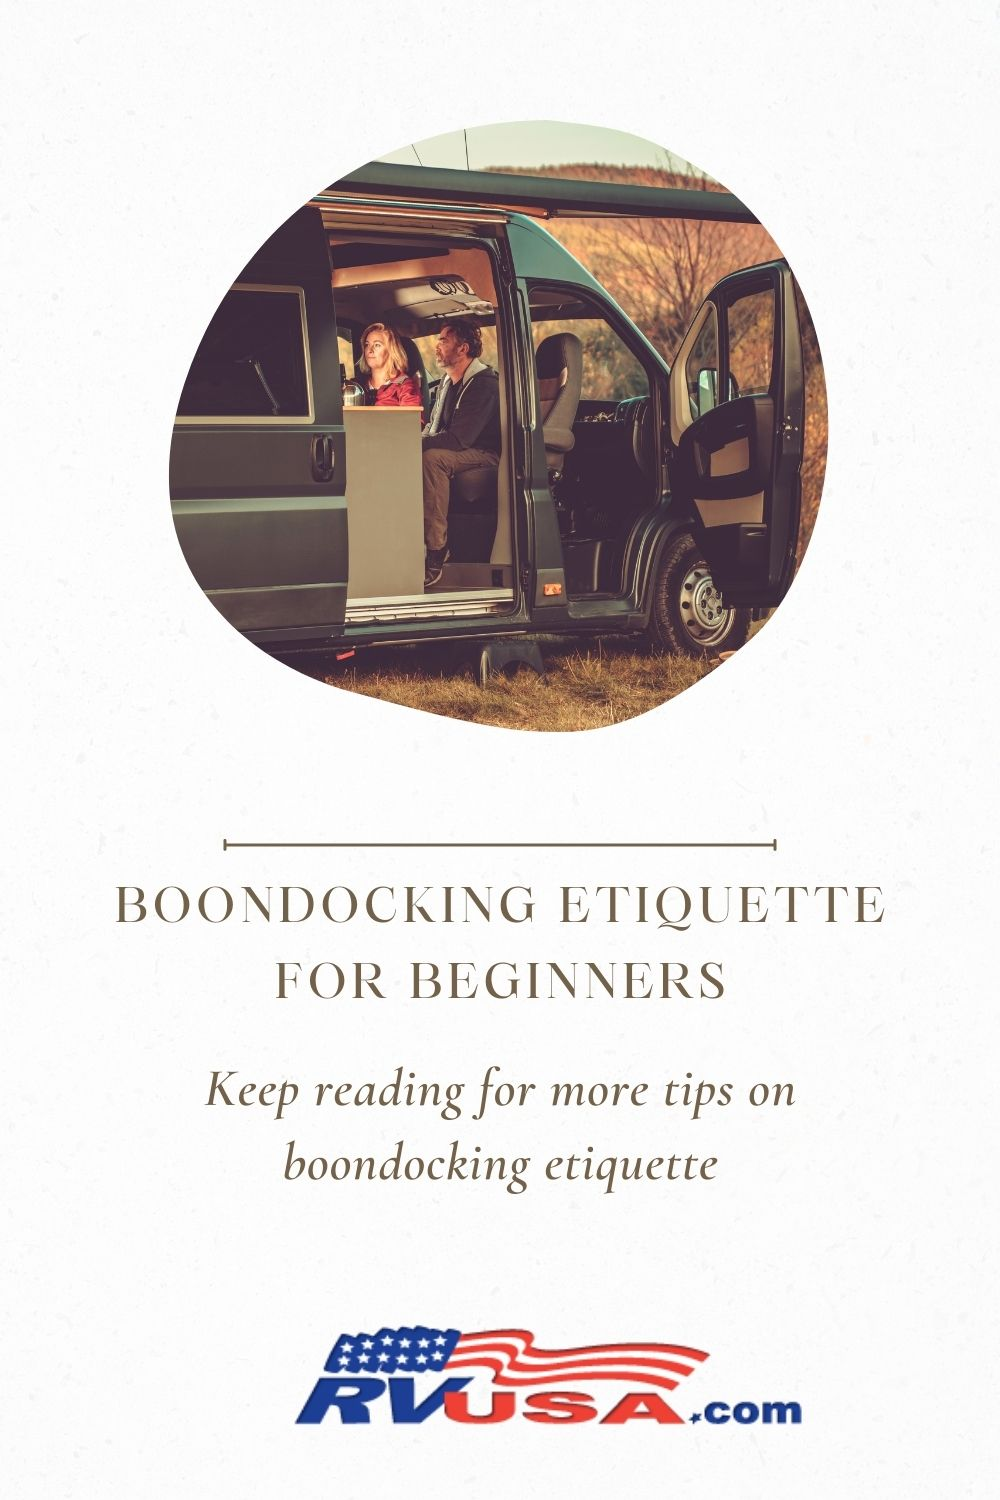 Keep reading for more tips on boondocking etiquette